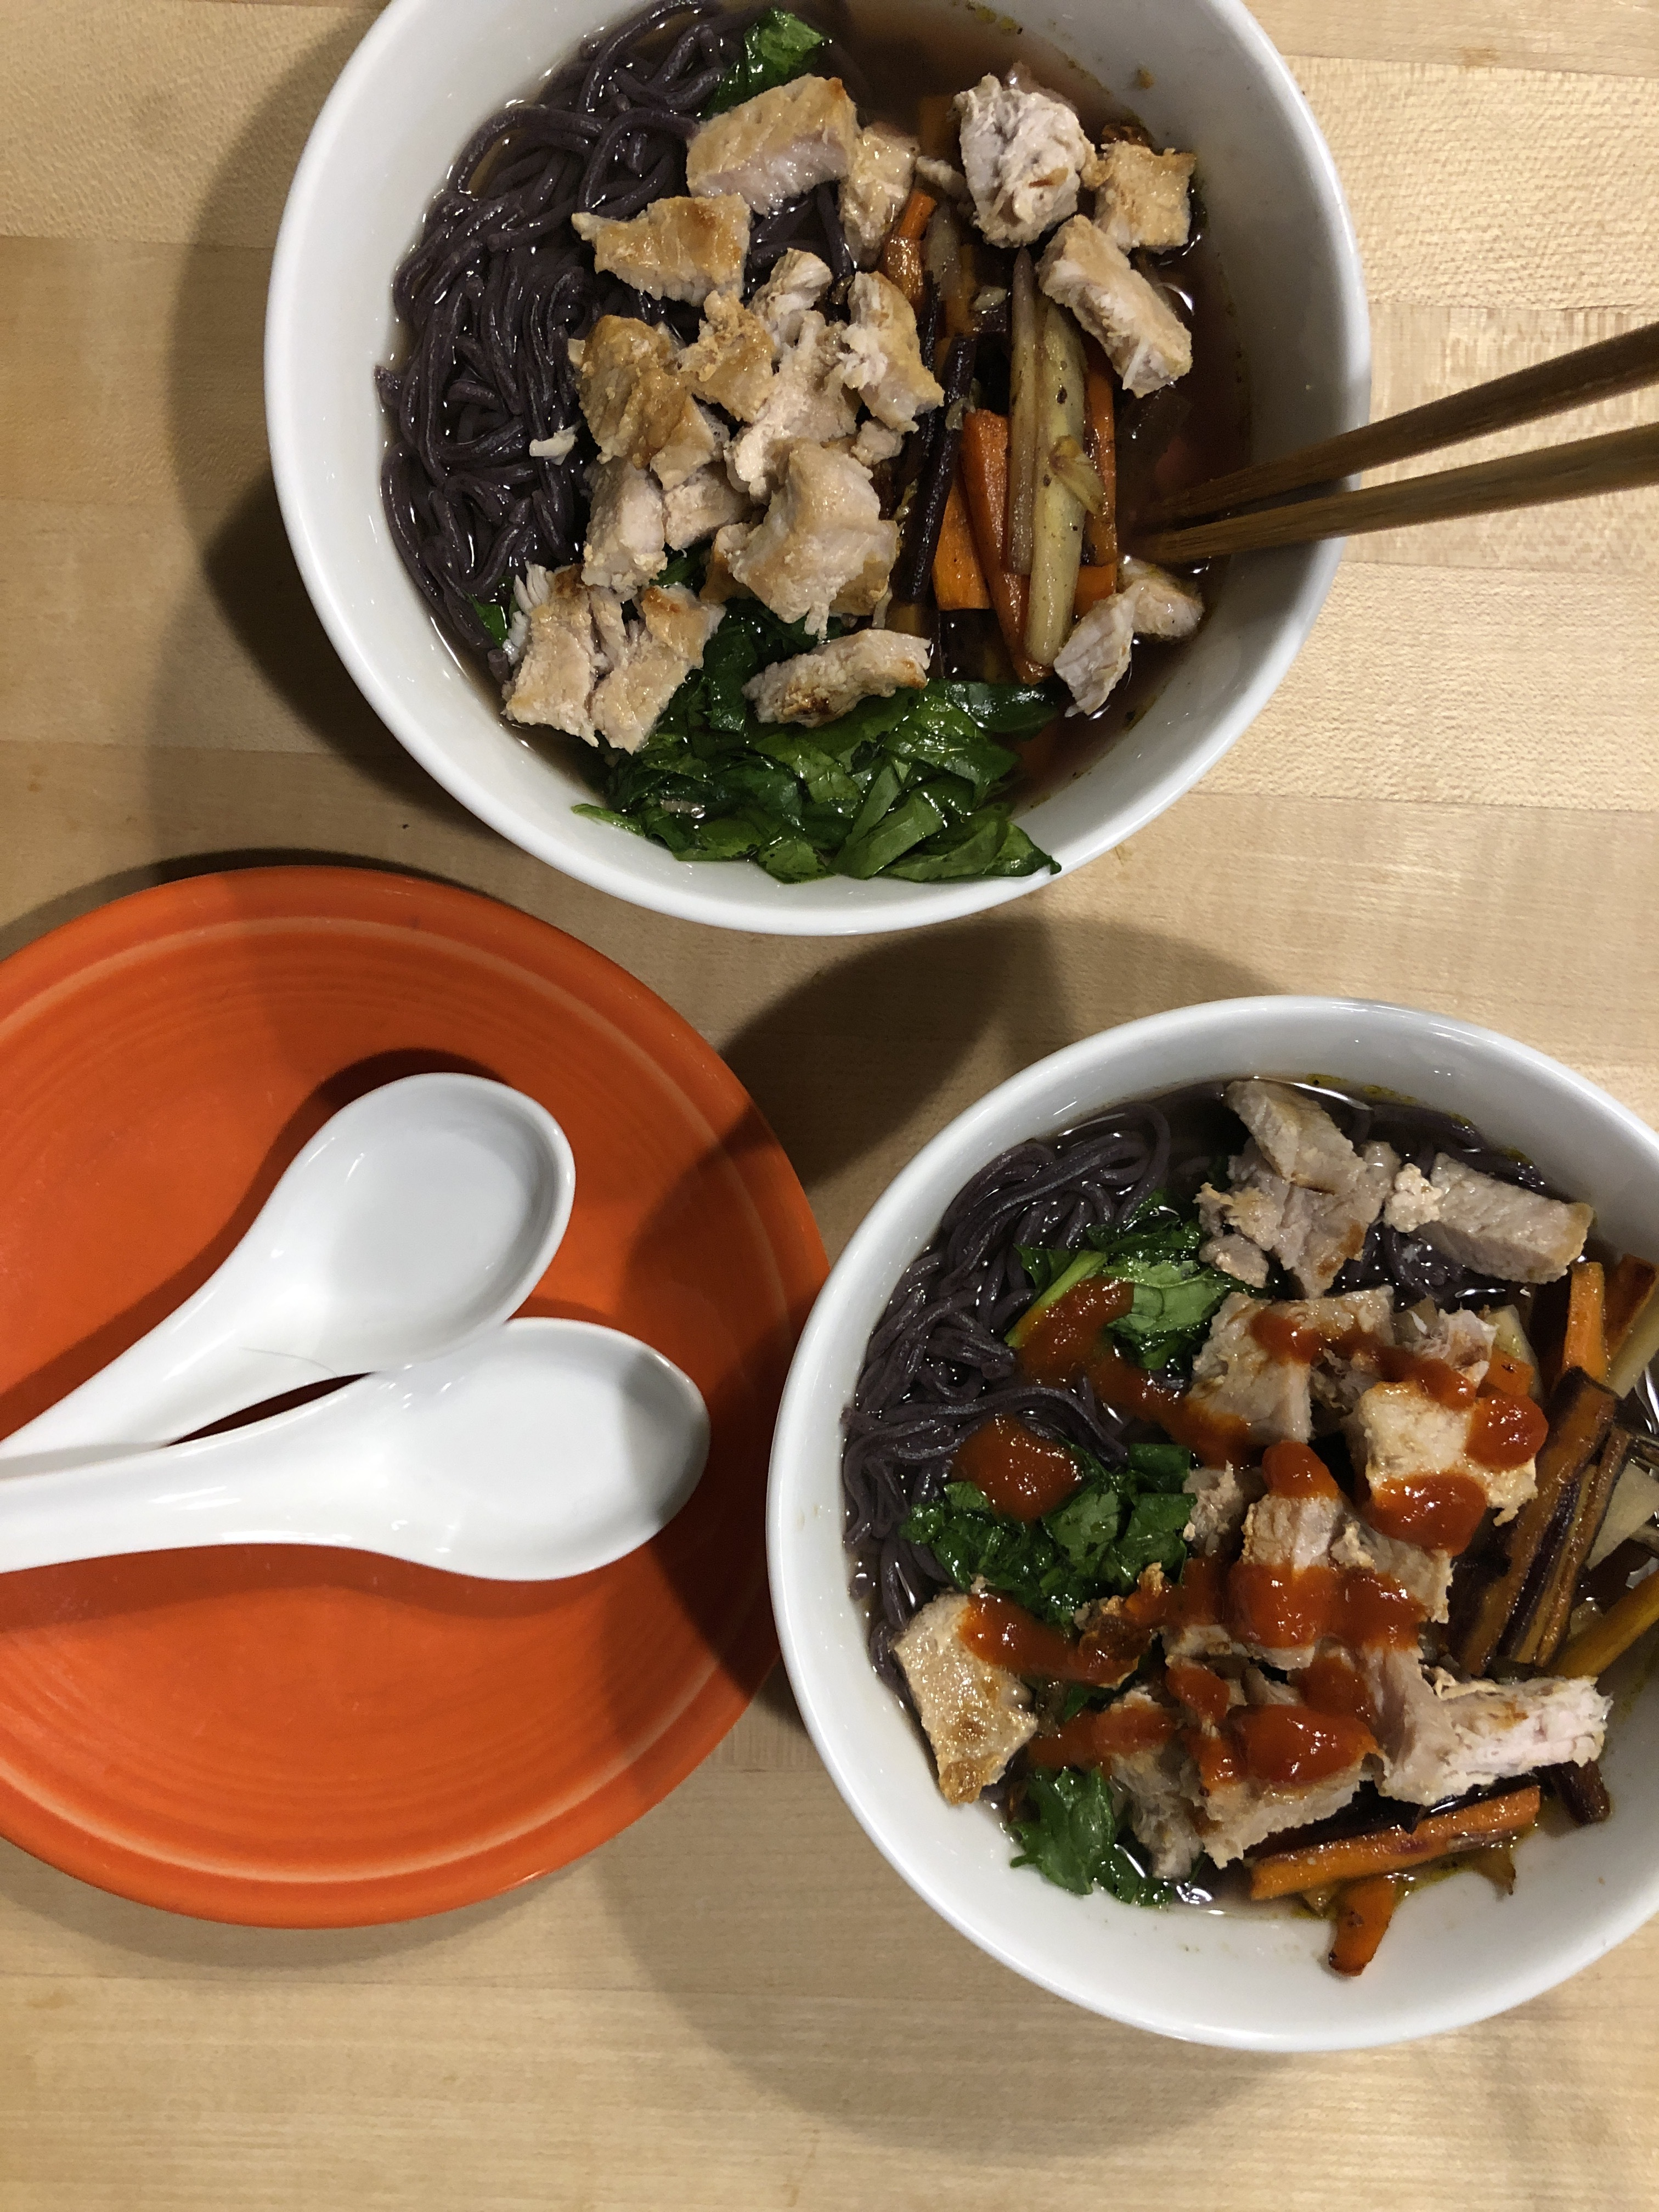 Two white bowls containing dark broth, rice noodles, chunks of pork and bright orange carrots